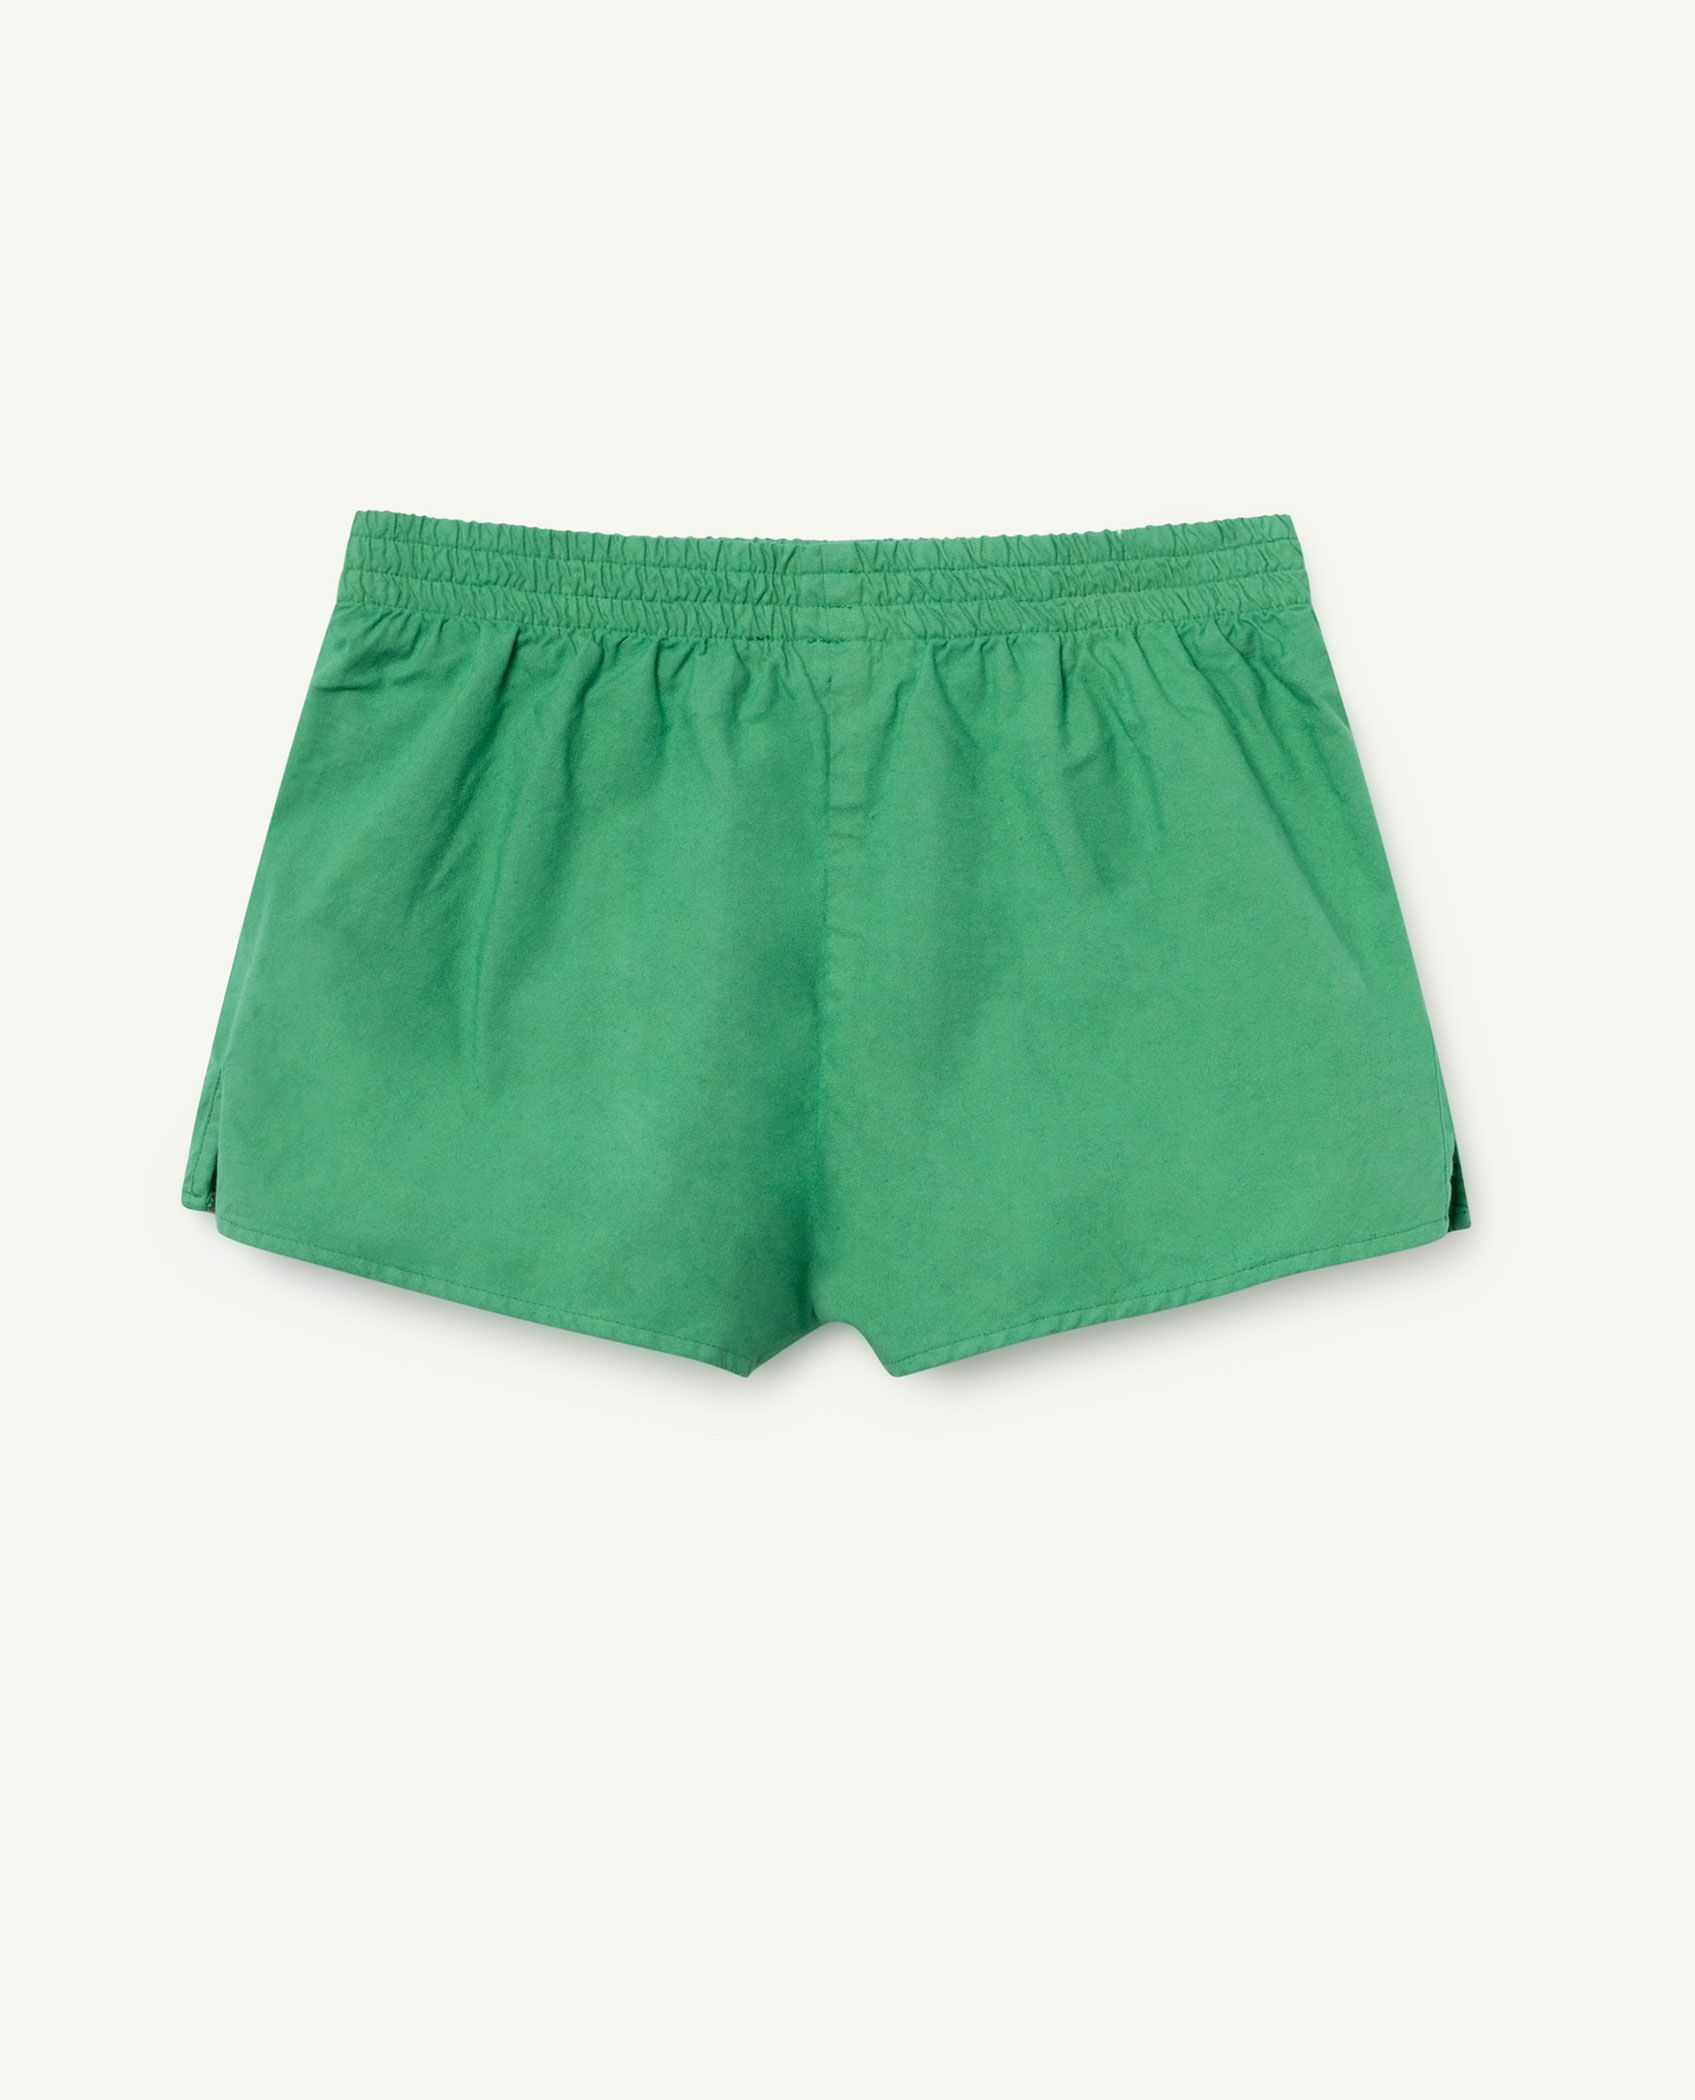 Green Spider Shorts img-2